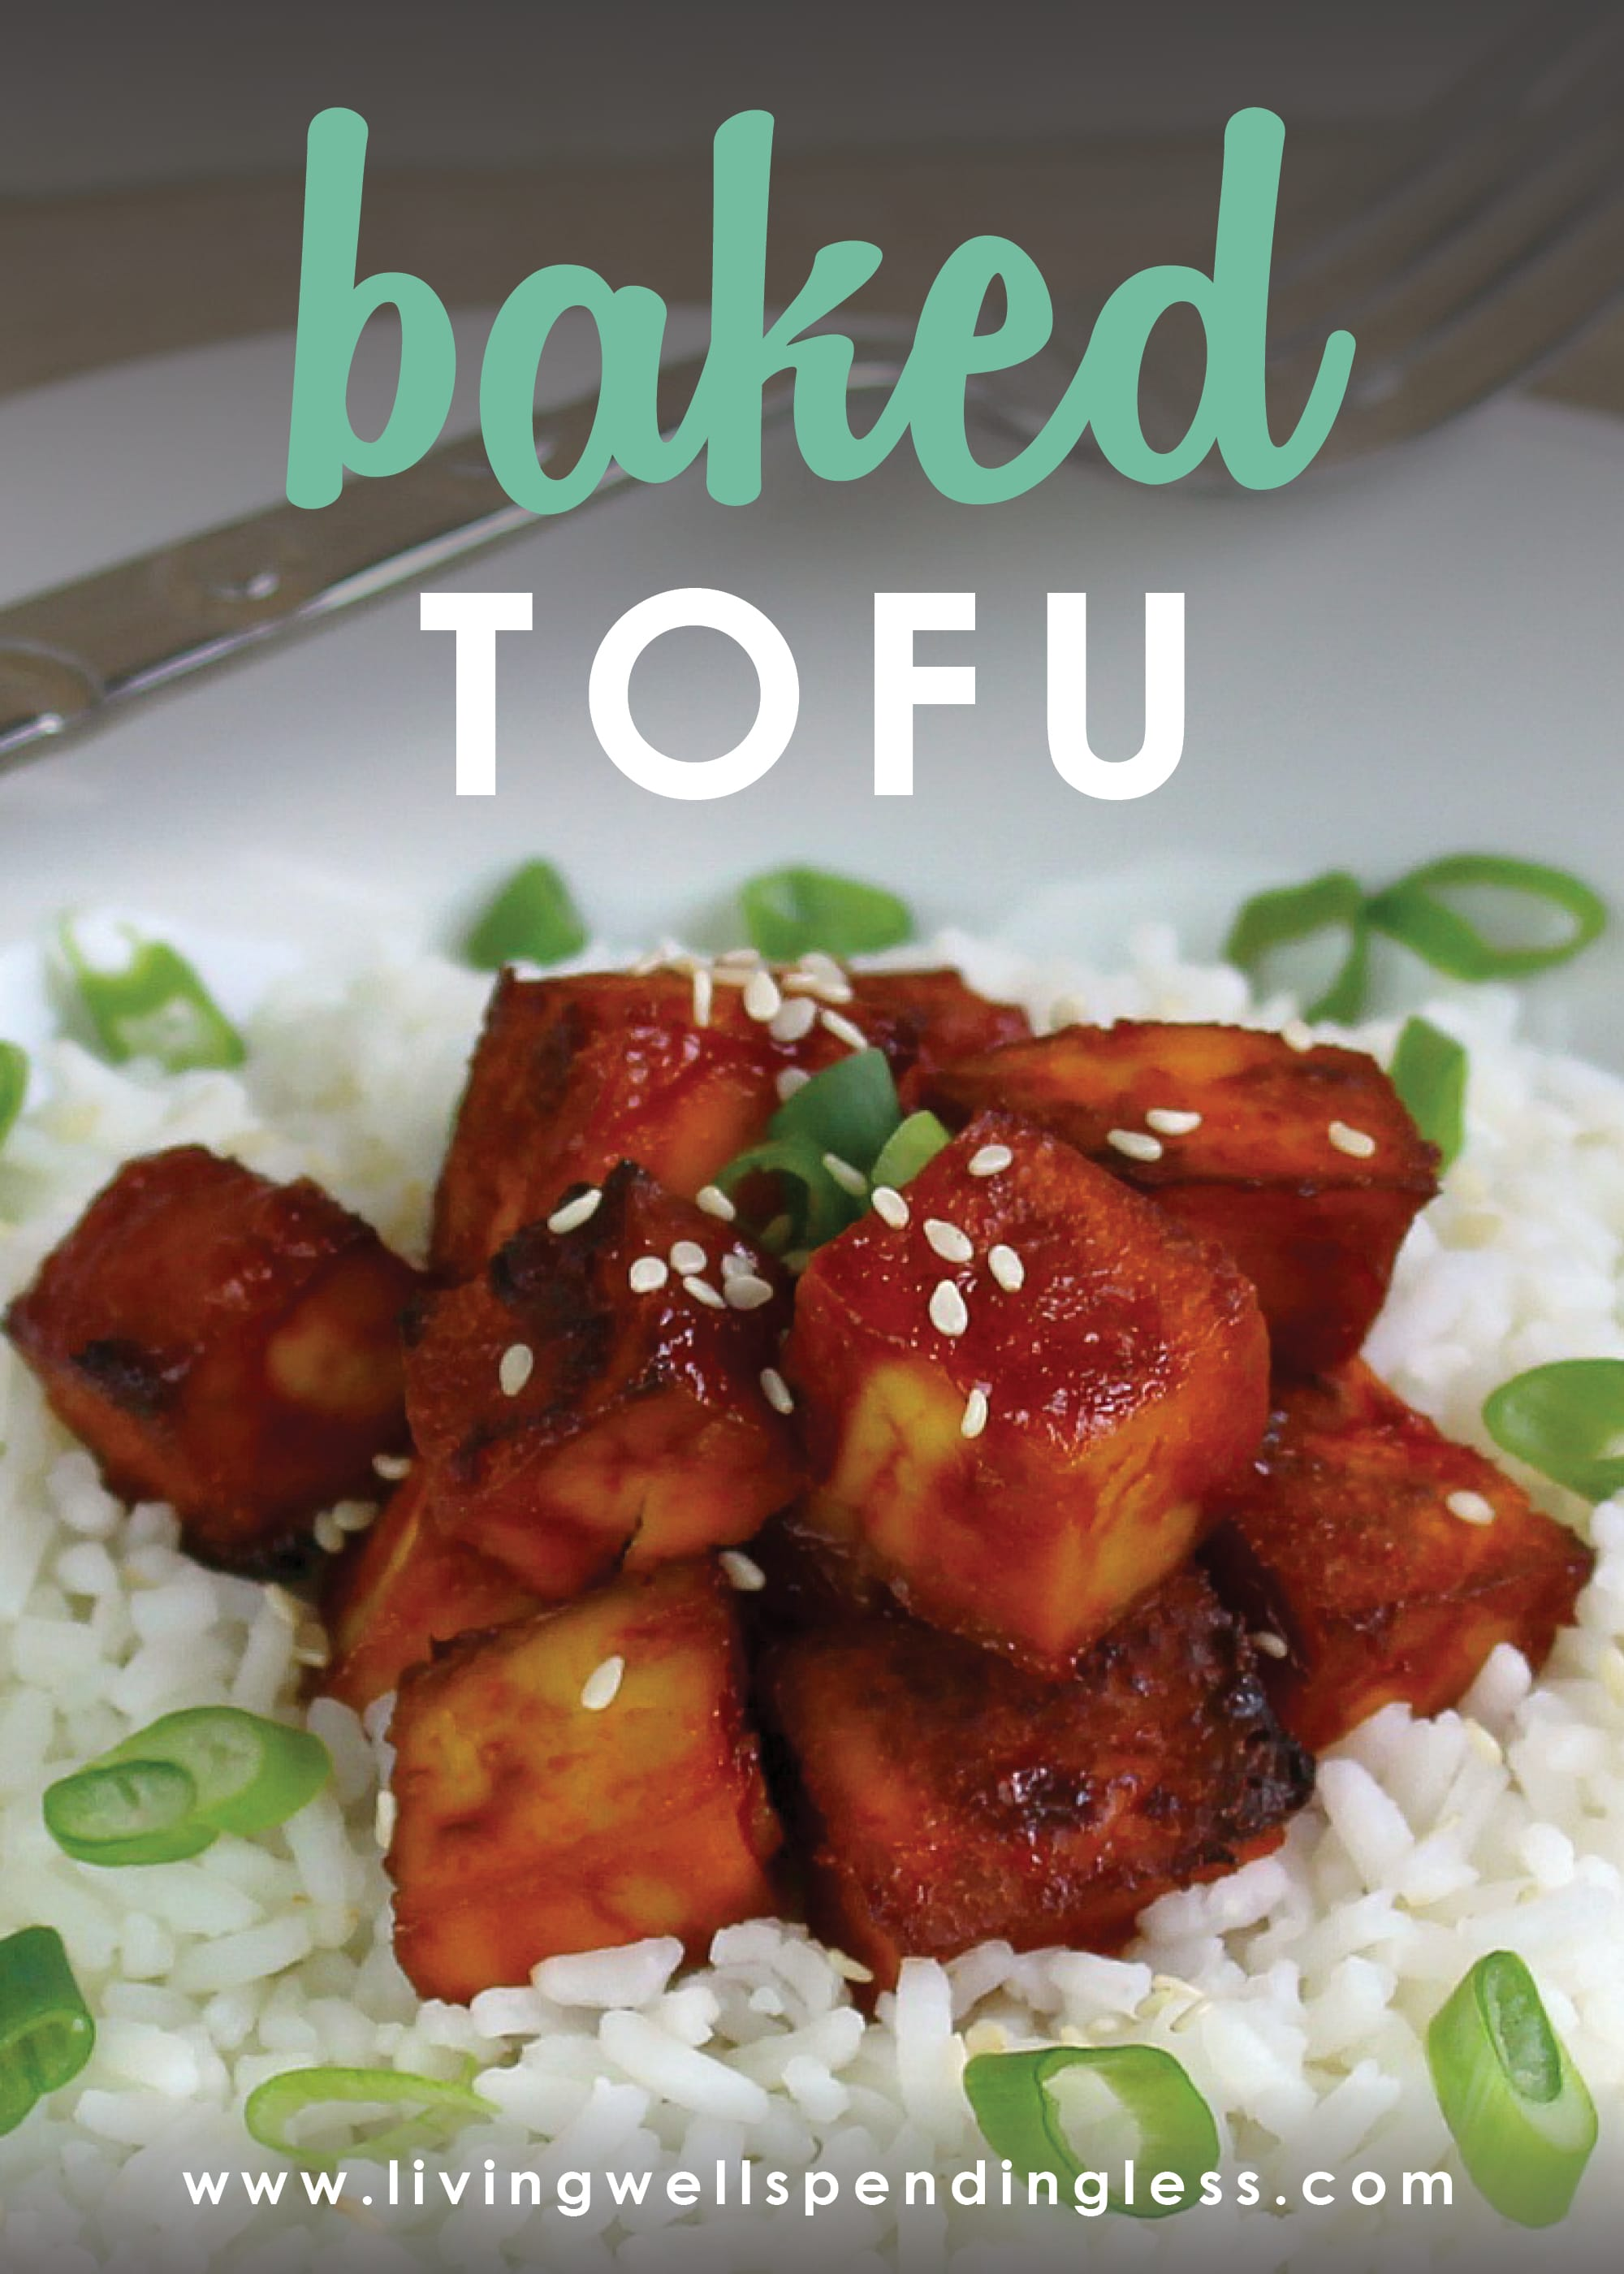 Baked Tofu made easy!